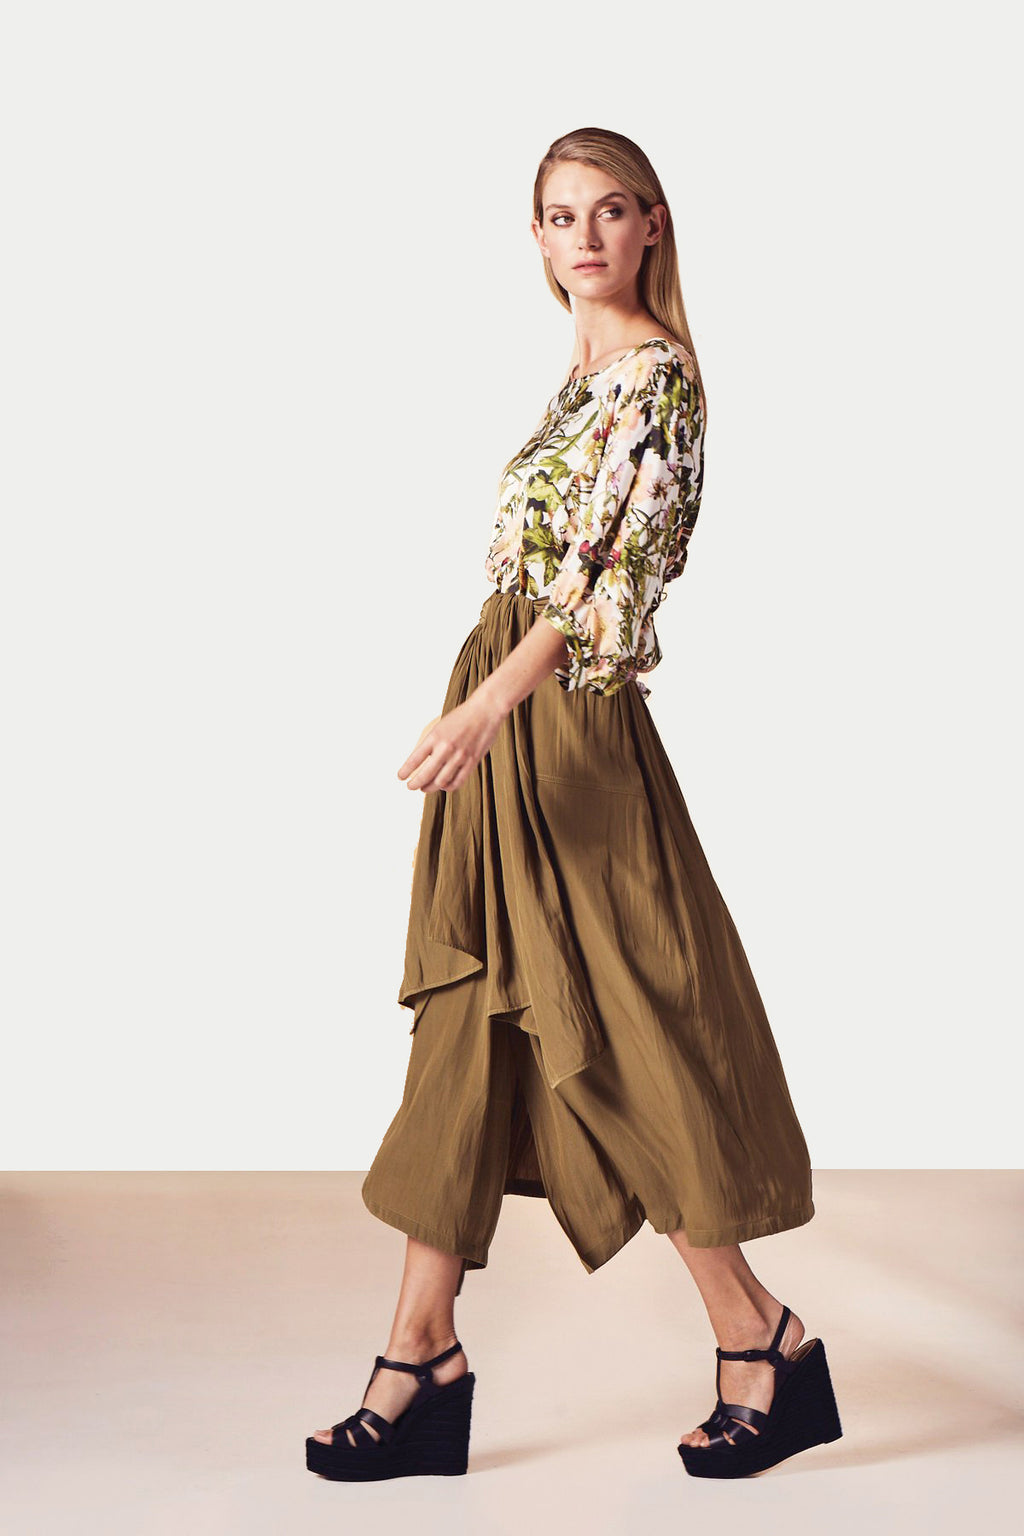 MELA PURDIE - Fold Skirt online at PAYA boutique